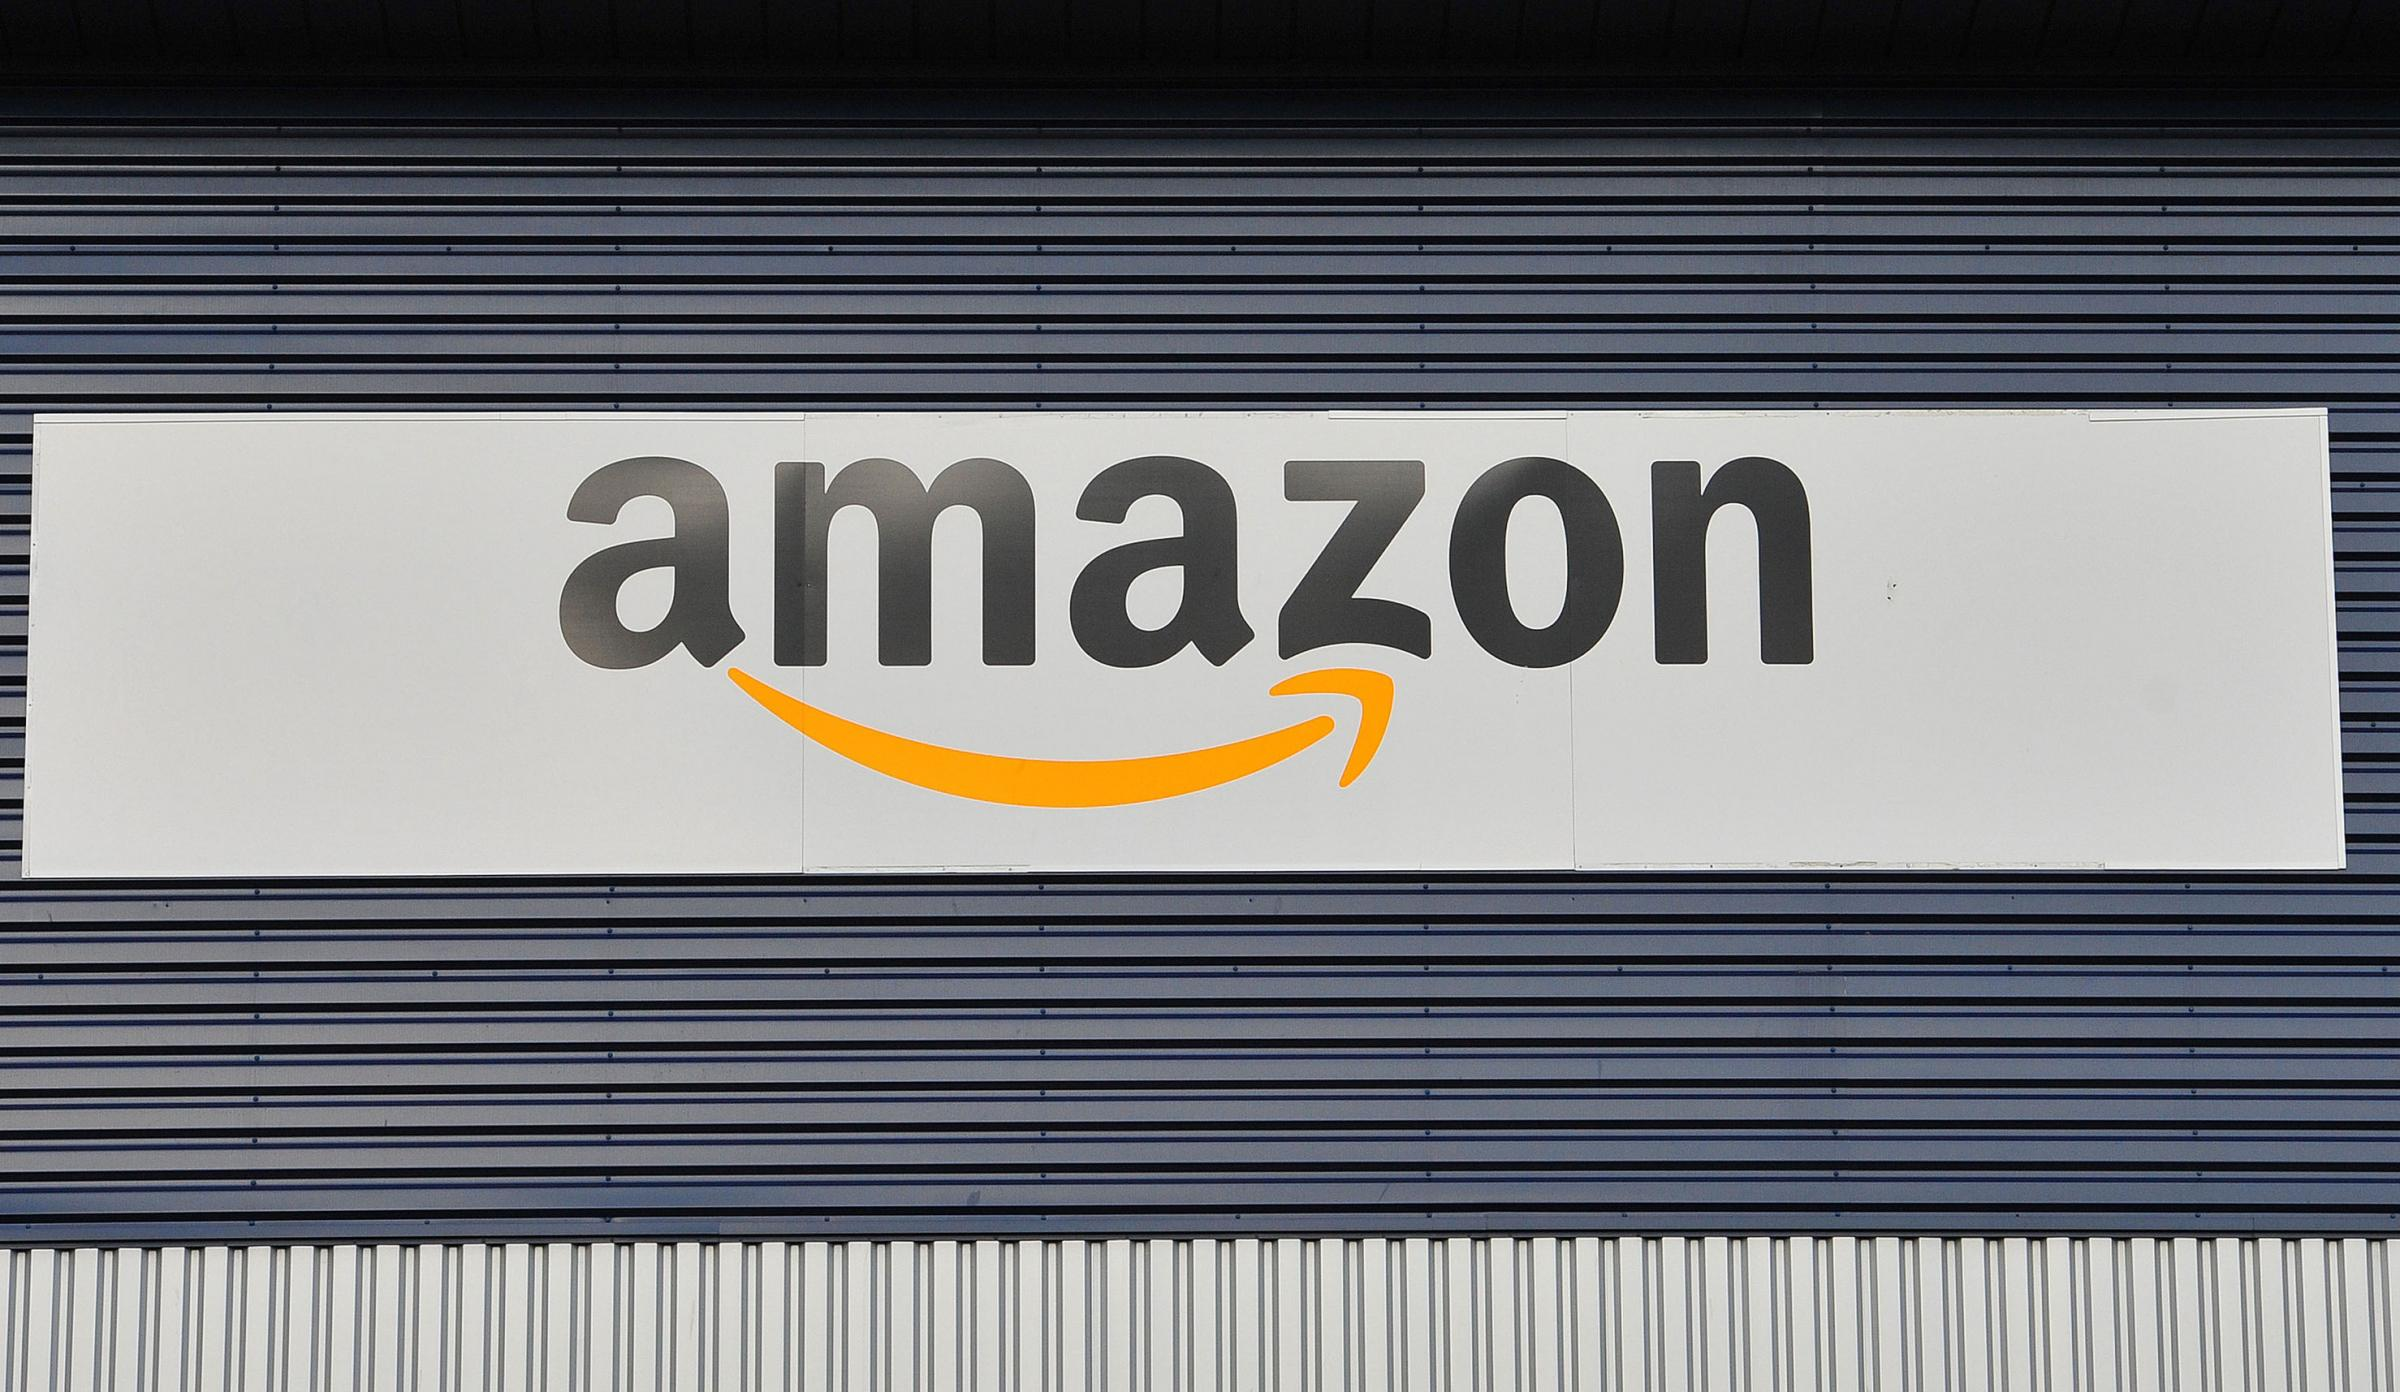 Amazon has been criticised for its pay and conditions for staff at its Dunfermline and Gourock warehouses